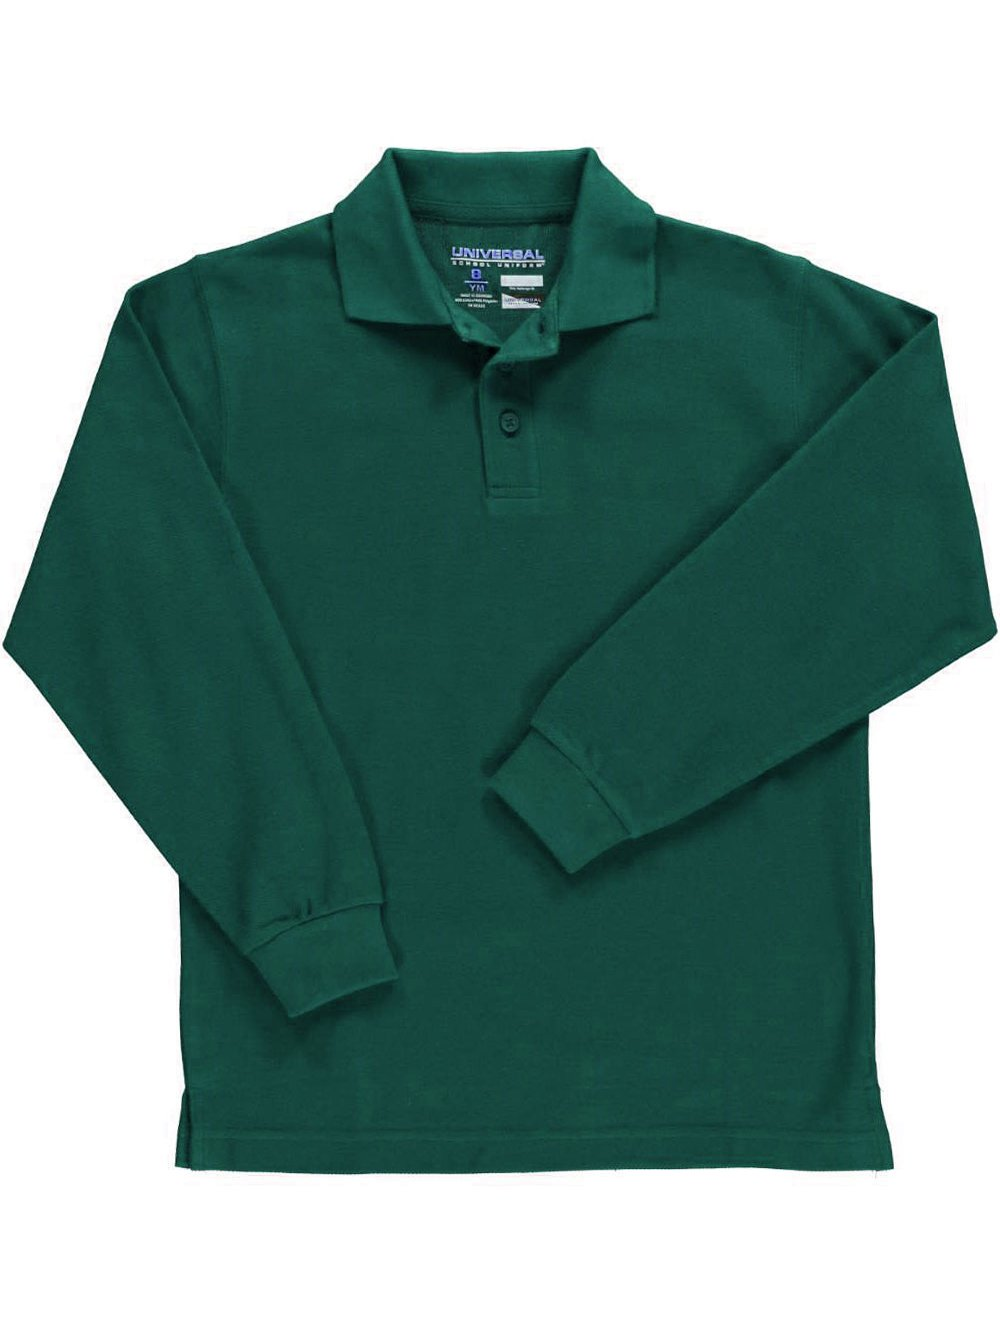 Universal Children's Long Sleeve Pique Polo Shirt - Many Colors Available